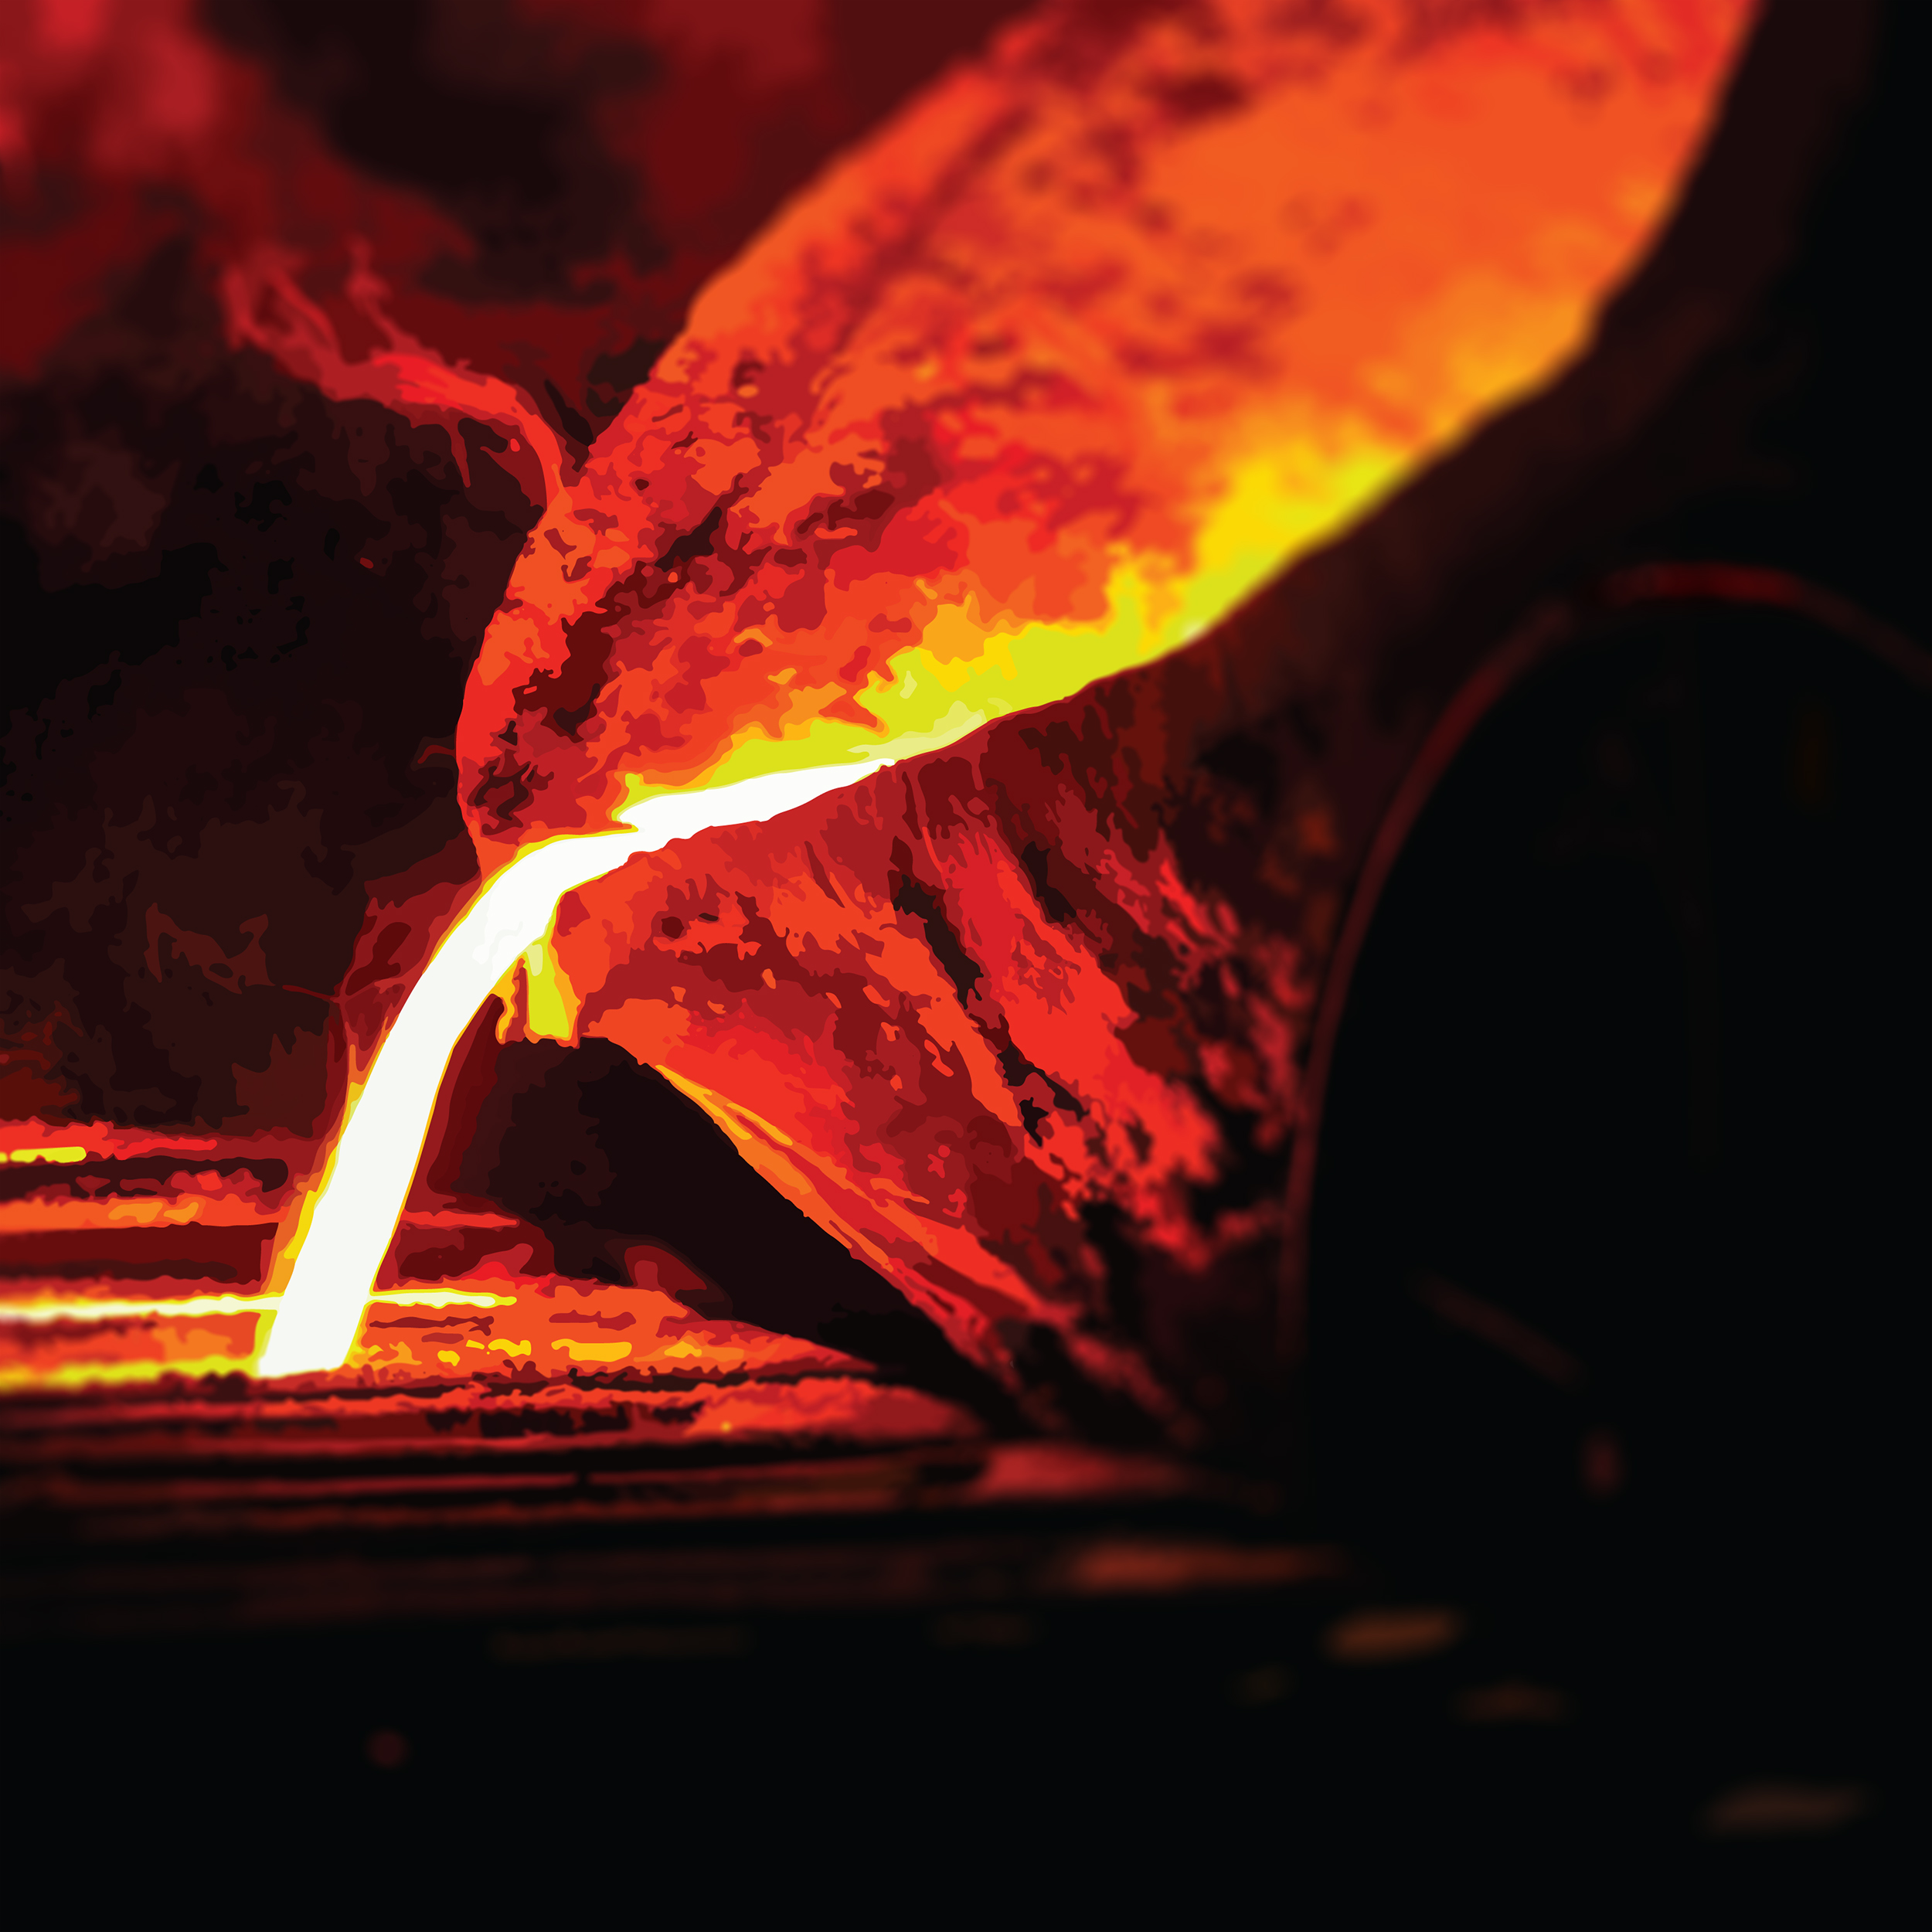 Foundry Casting Defects and Failure Prevention